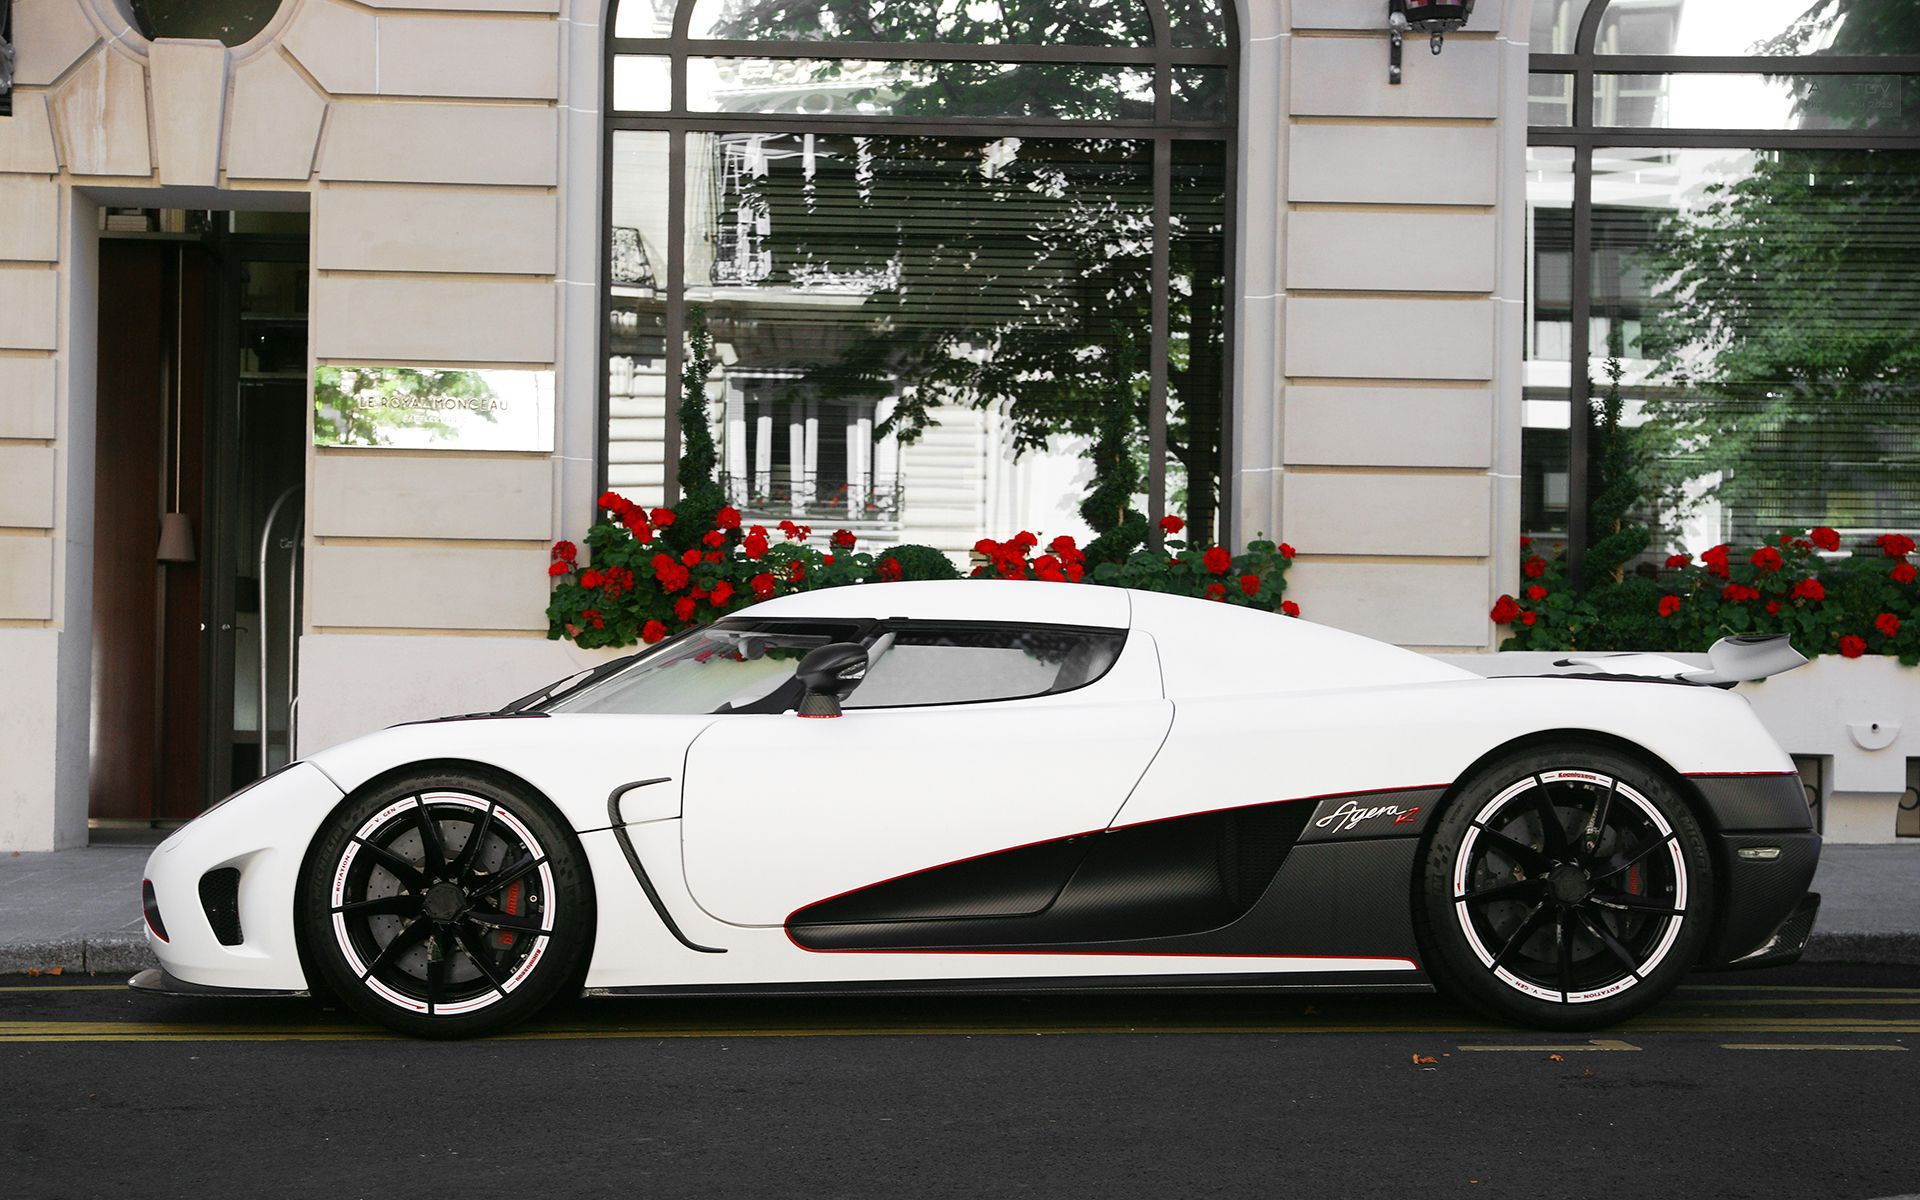 2014 Koenigsegg Agera R High Definition Wallpaper Is Hd Wallpaper